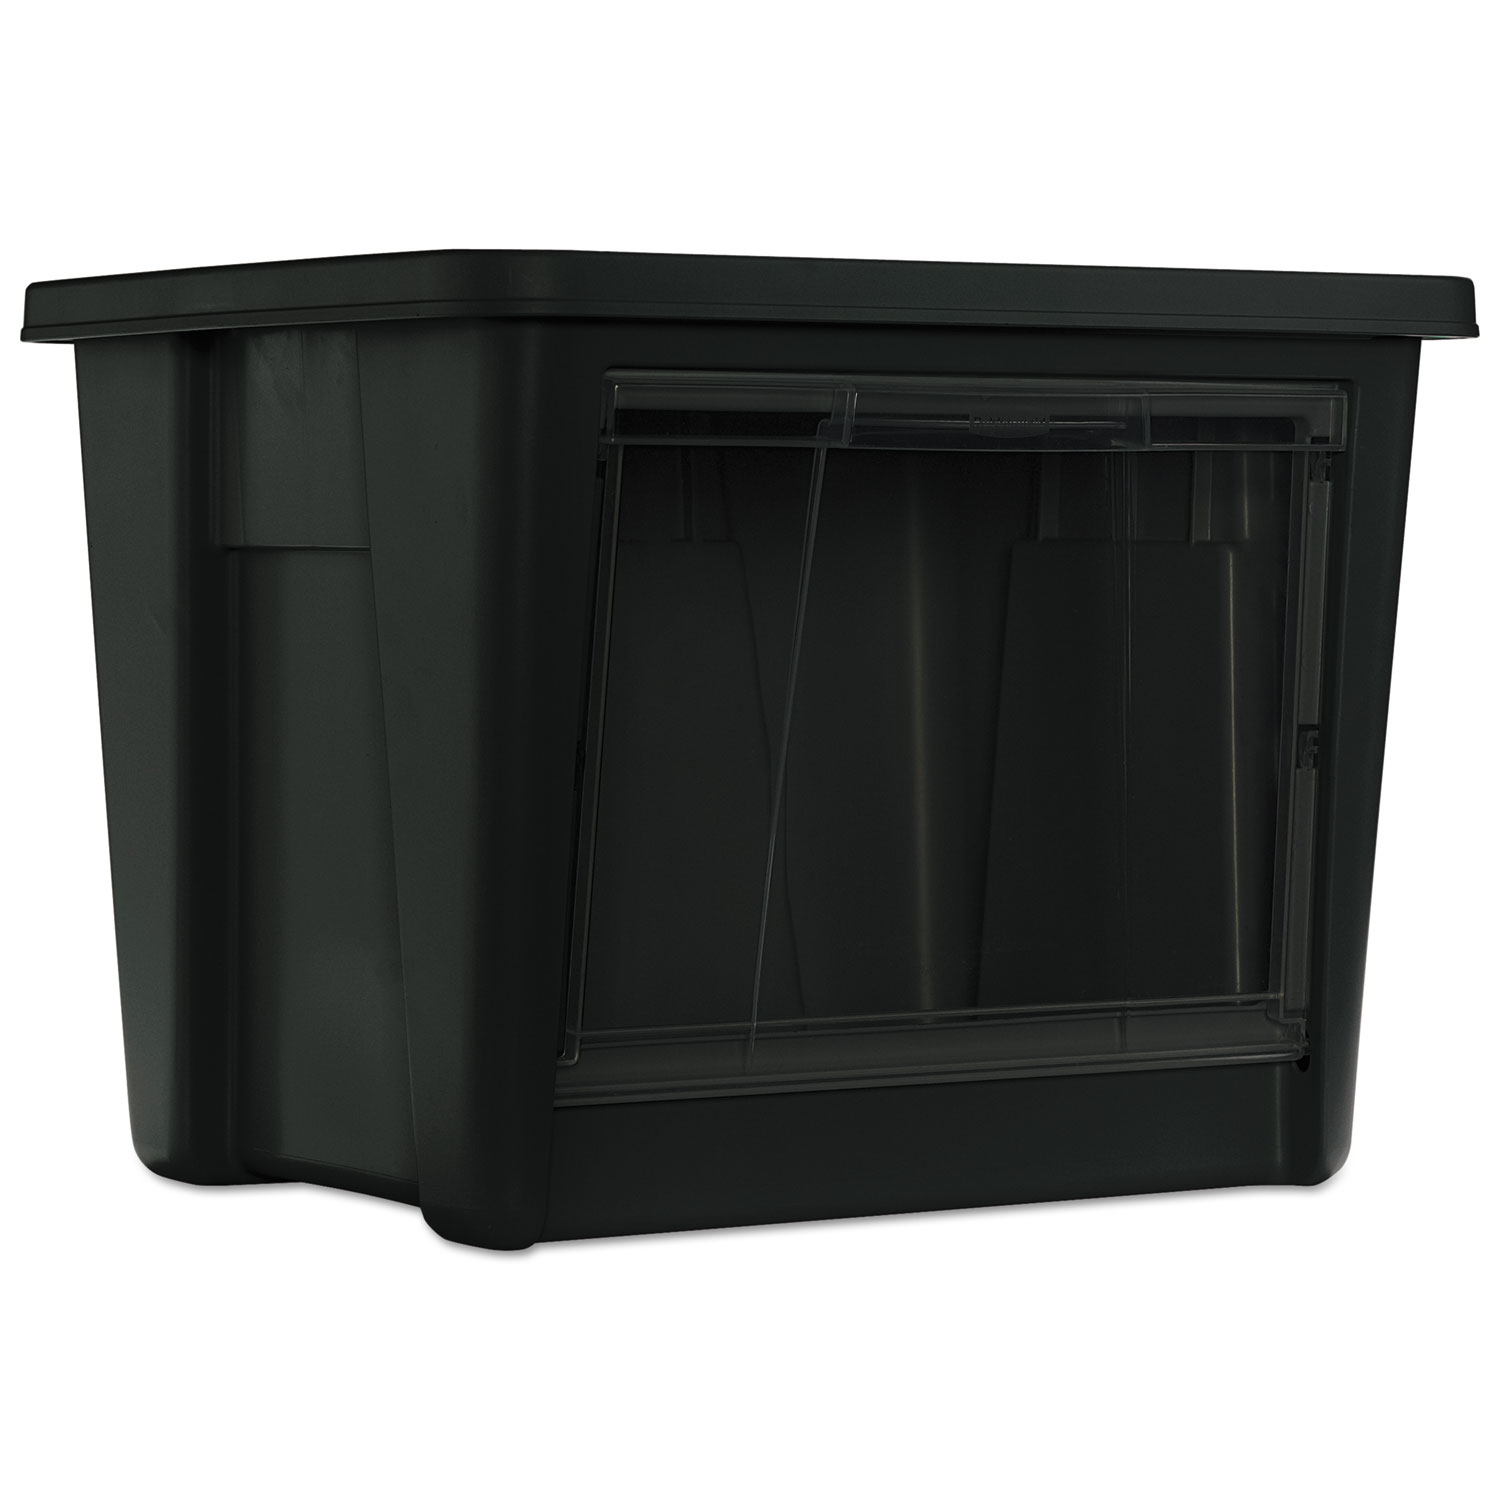 Roughneck Storage Box, 19 1/2 x 17 1/2 x 15 1/8, Black/Clear Front, 4/Carton